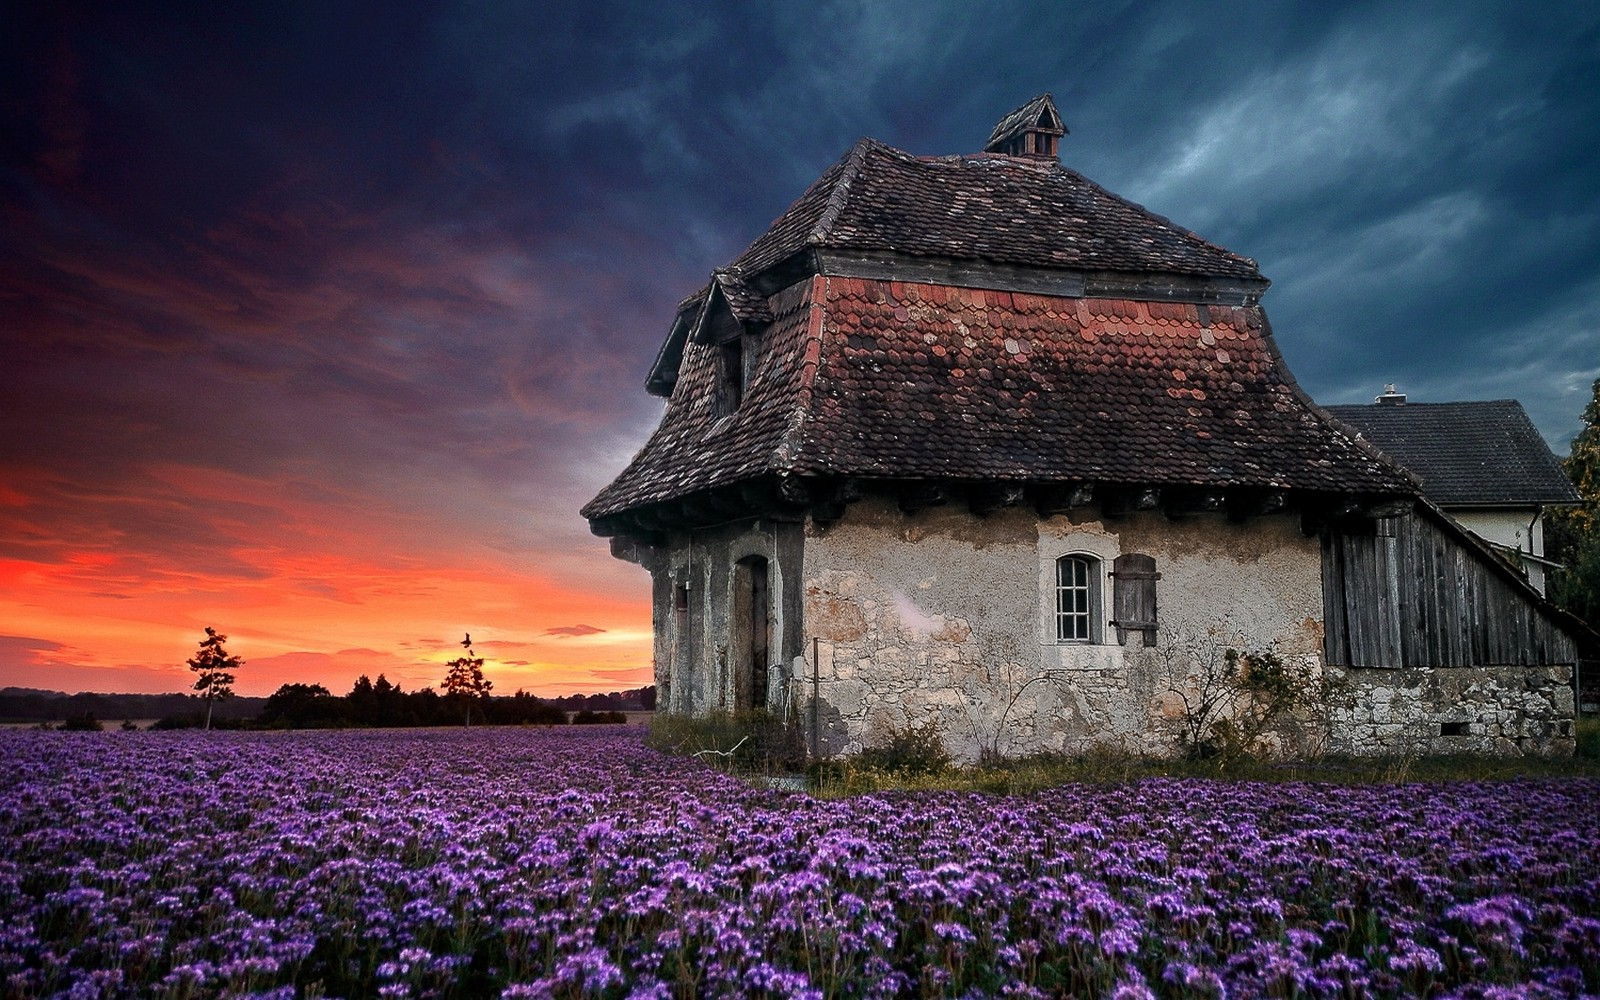 Full Hd Wallpapers Sunsets Landscape Nature Sunset Farm House Old Sky Flowers